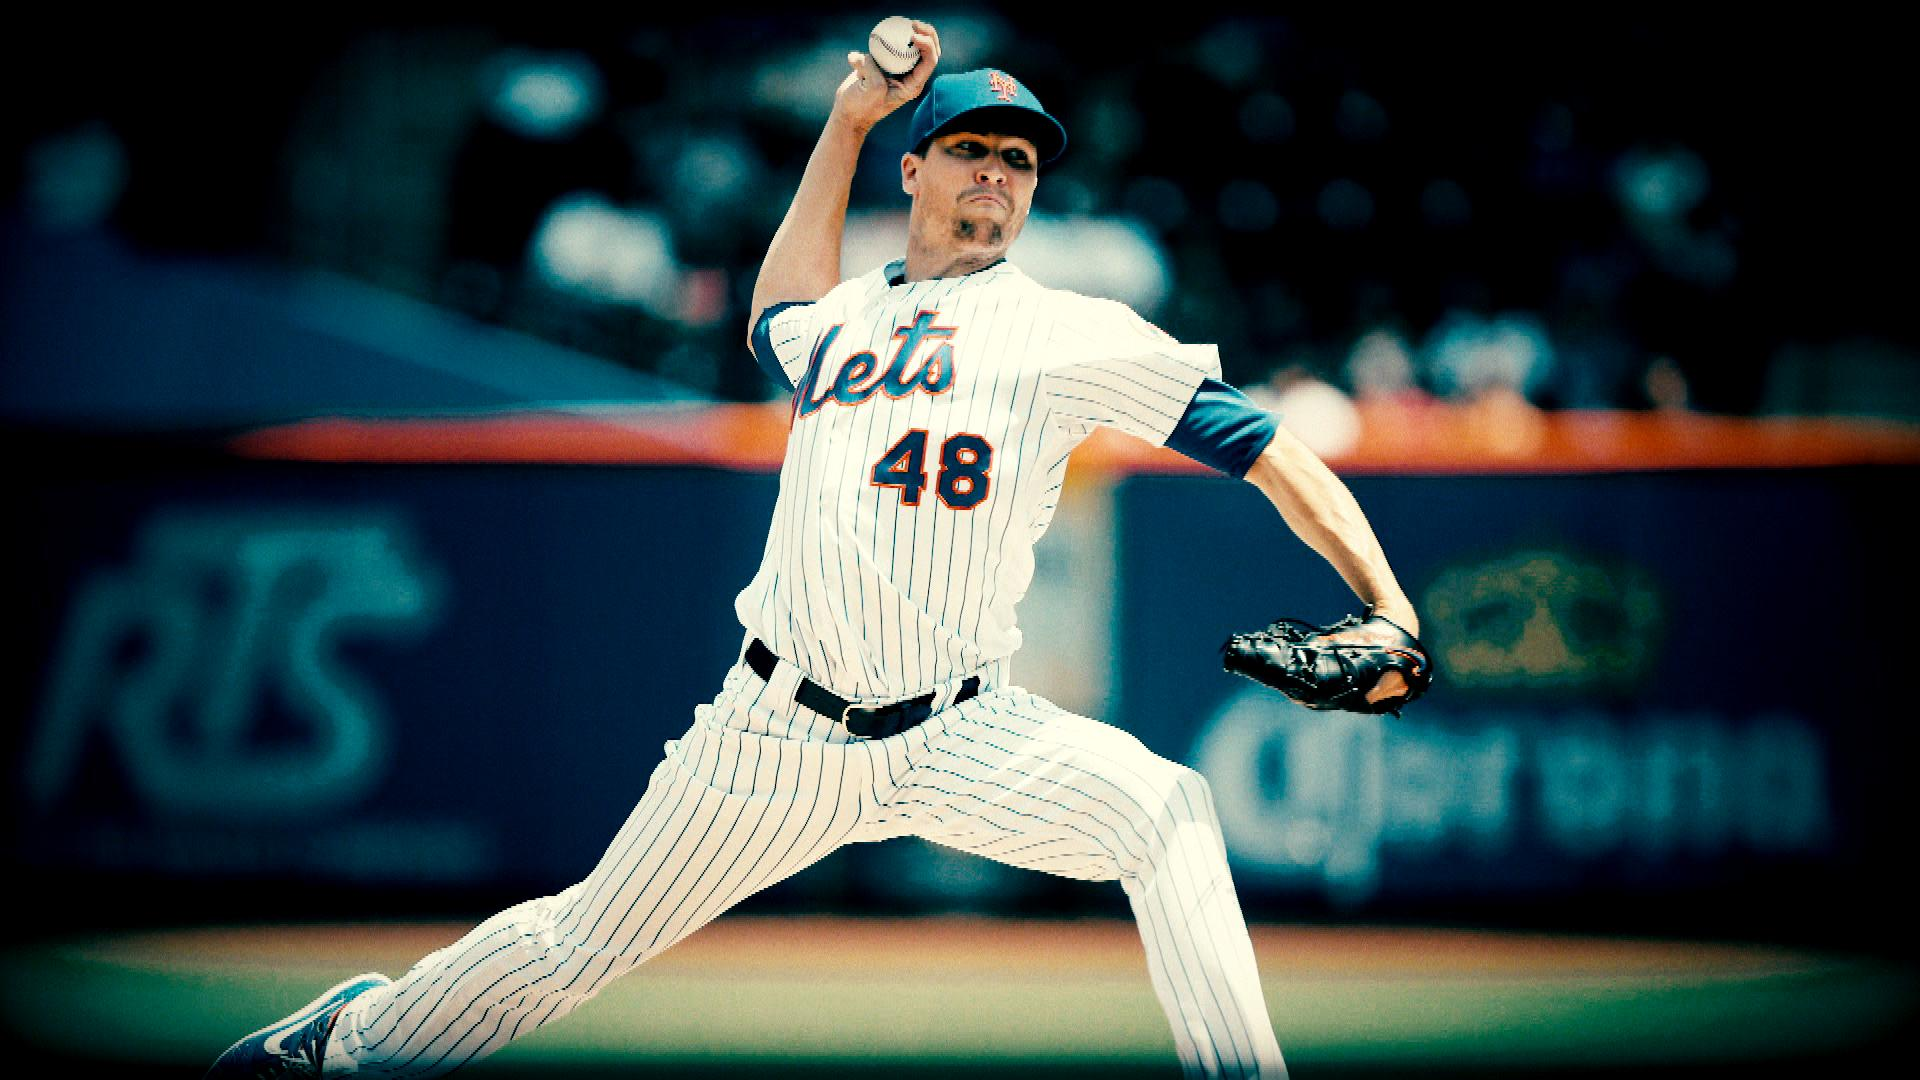 Fantasy Baseball: Jacob deGrom is the top two-start pitcher to start